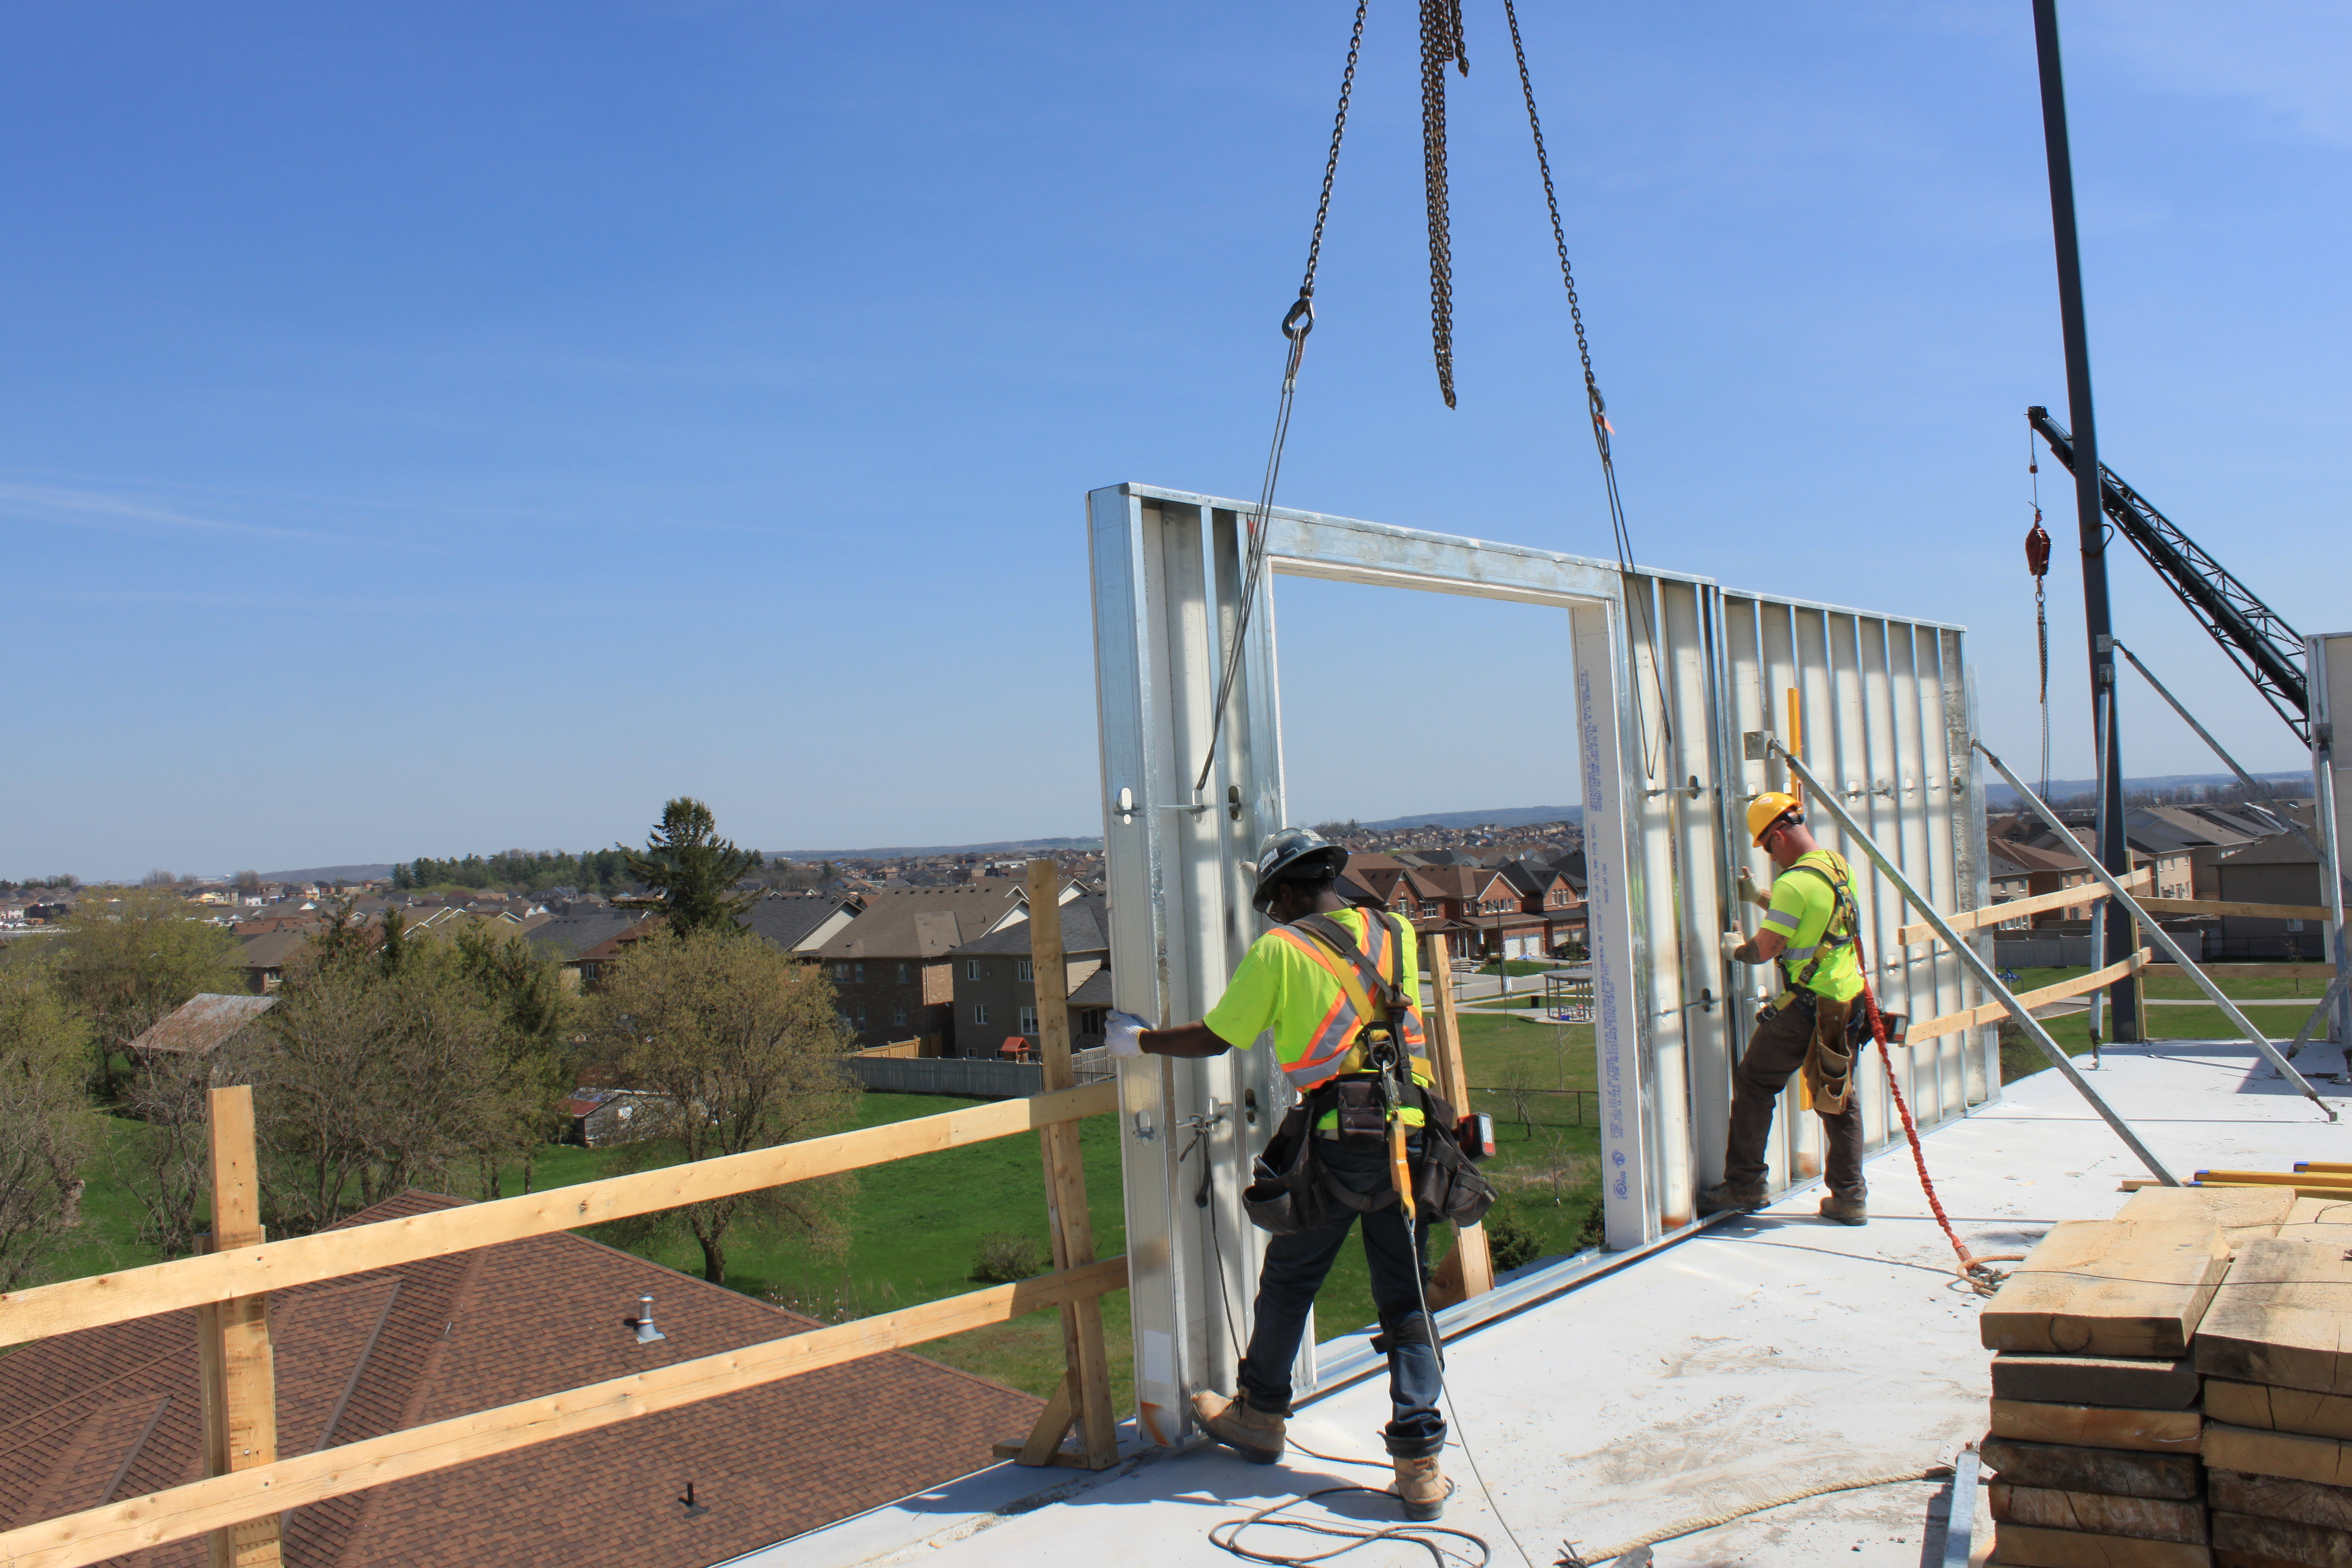 Comslab and comwall (Prefab) being installed